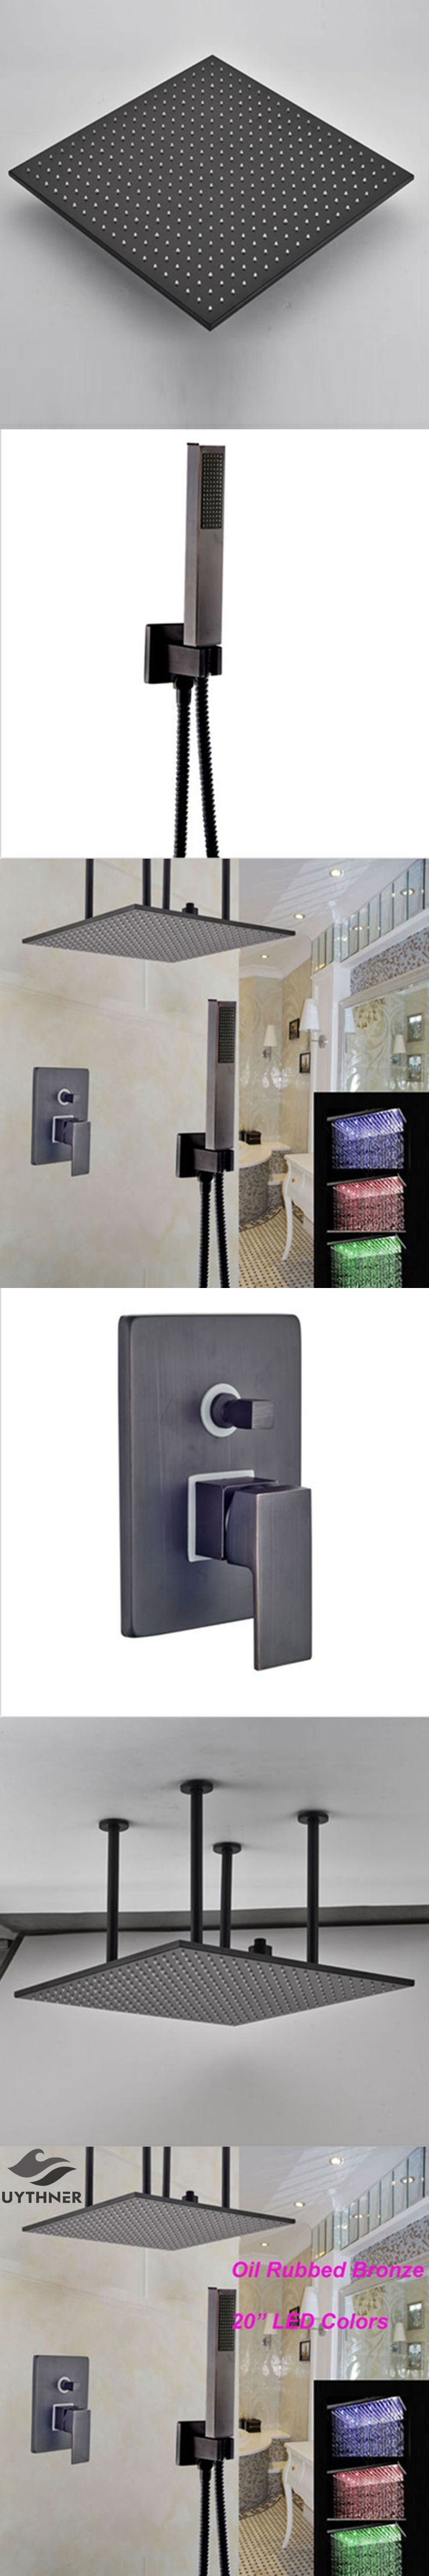 23 best bathroom fixtures images on pinterest